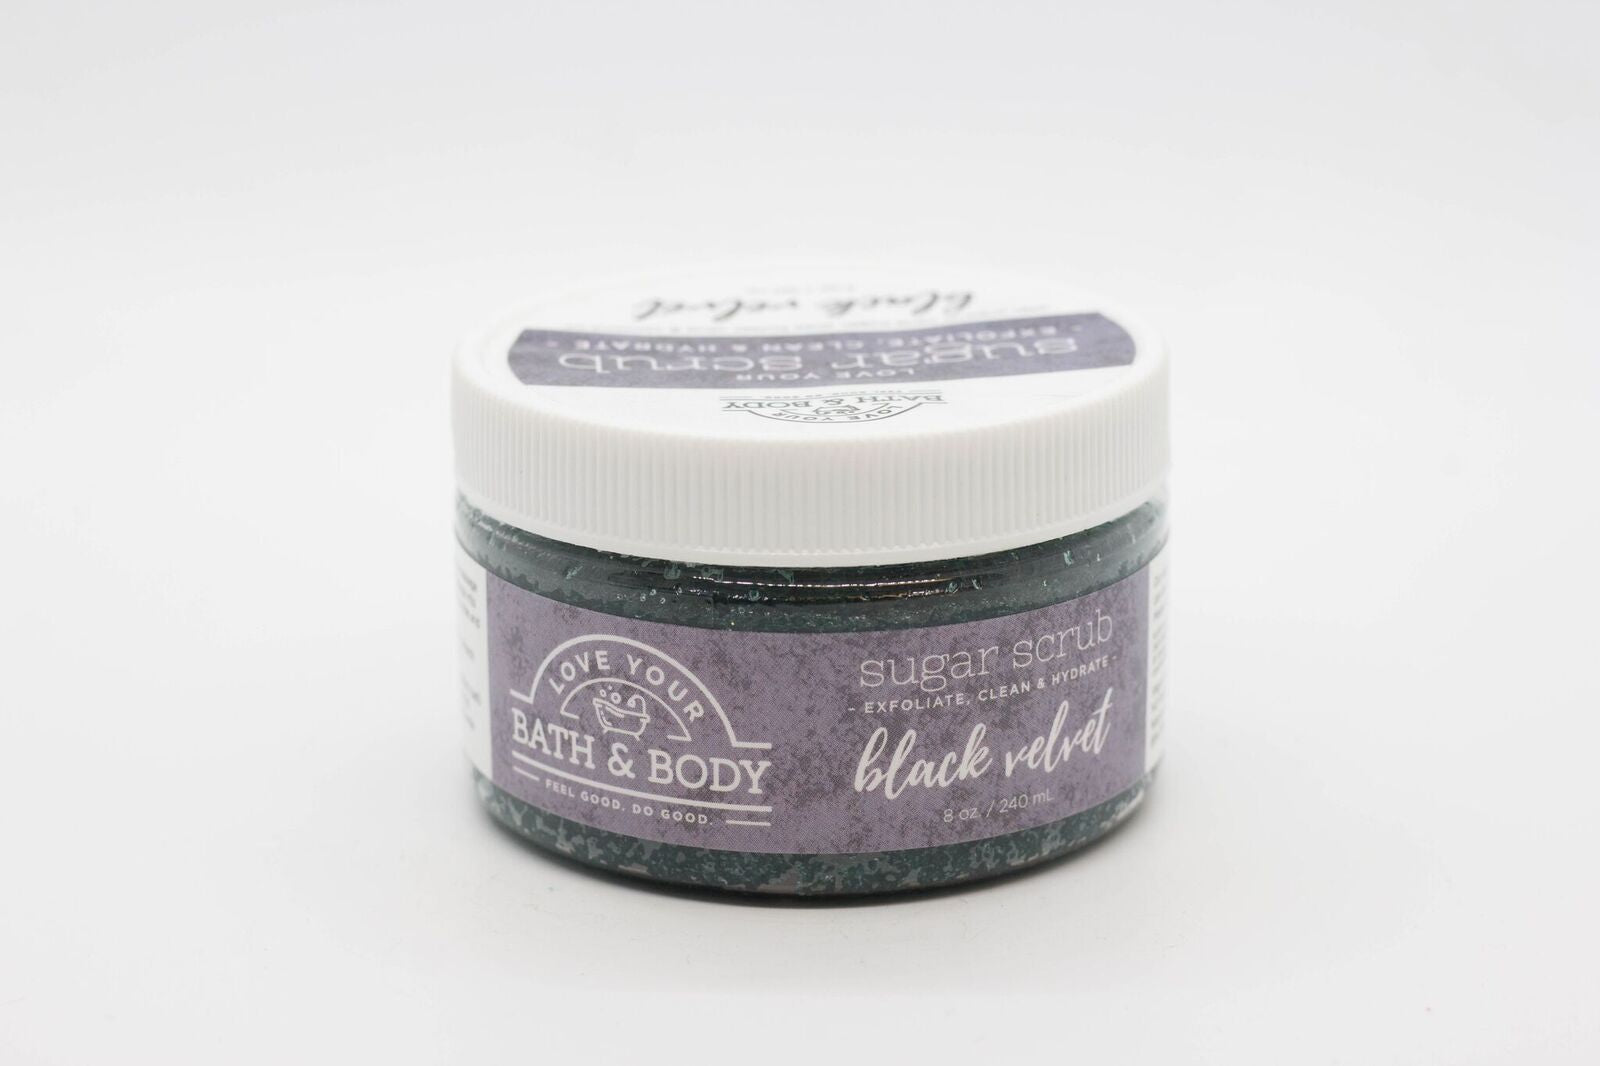 Black Velvet Sugar Scrub 4 oz.